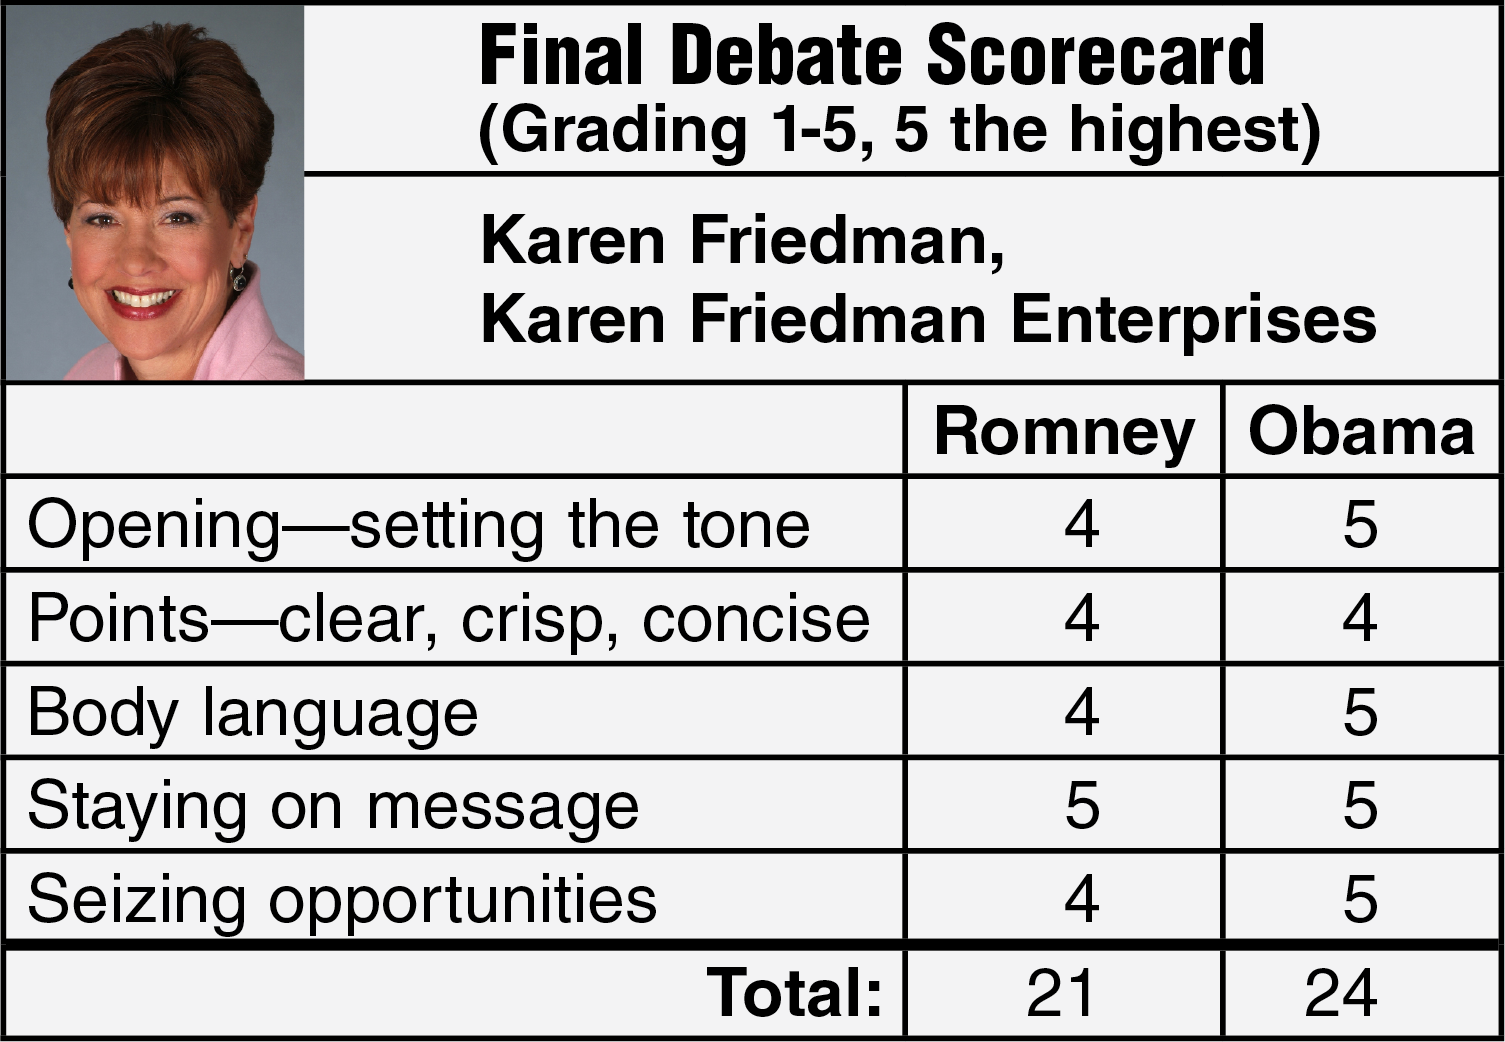 Media Trainers Score the Final Debate Between Obama and Romney ...